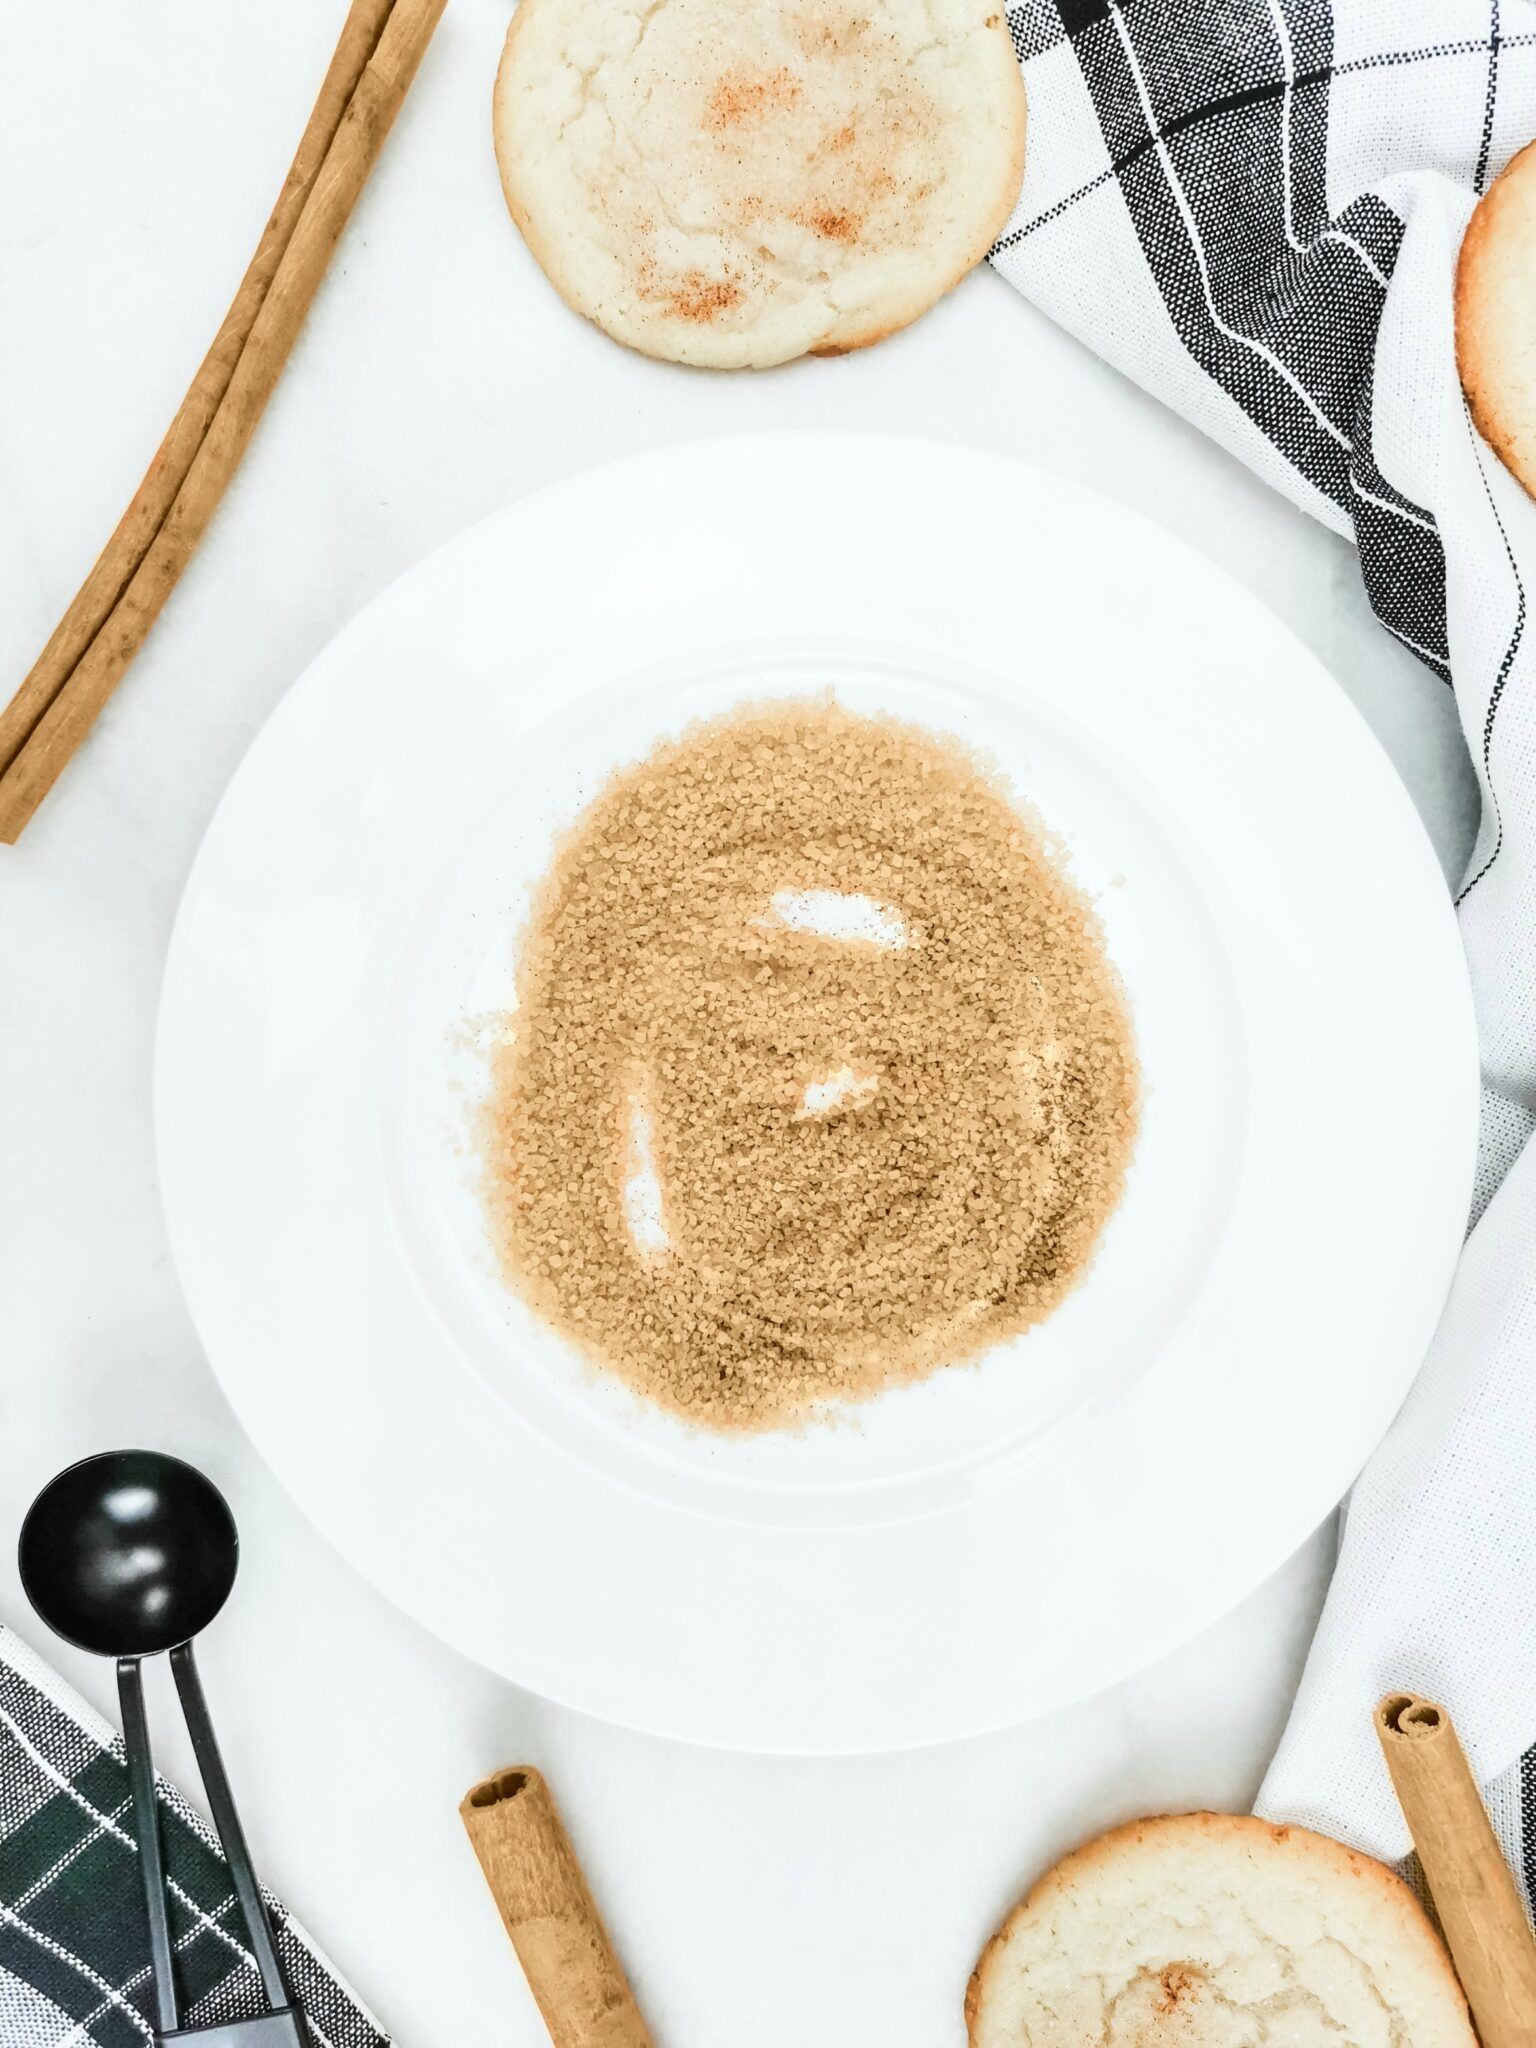 A flatlay picture with a plate with a stevia and turbinado raw sugar blend. This will be used for the rimming the glass for a Caramel Snickerdoodle Mocktail. Surrounding it are snickerdoodle cookies and cinnamon sticks.